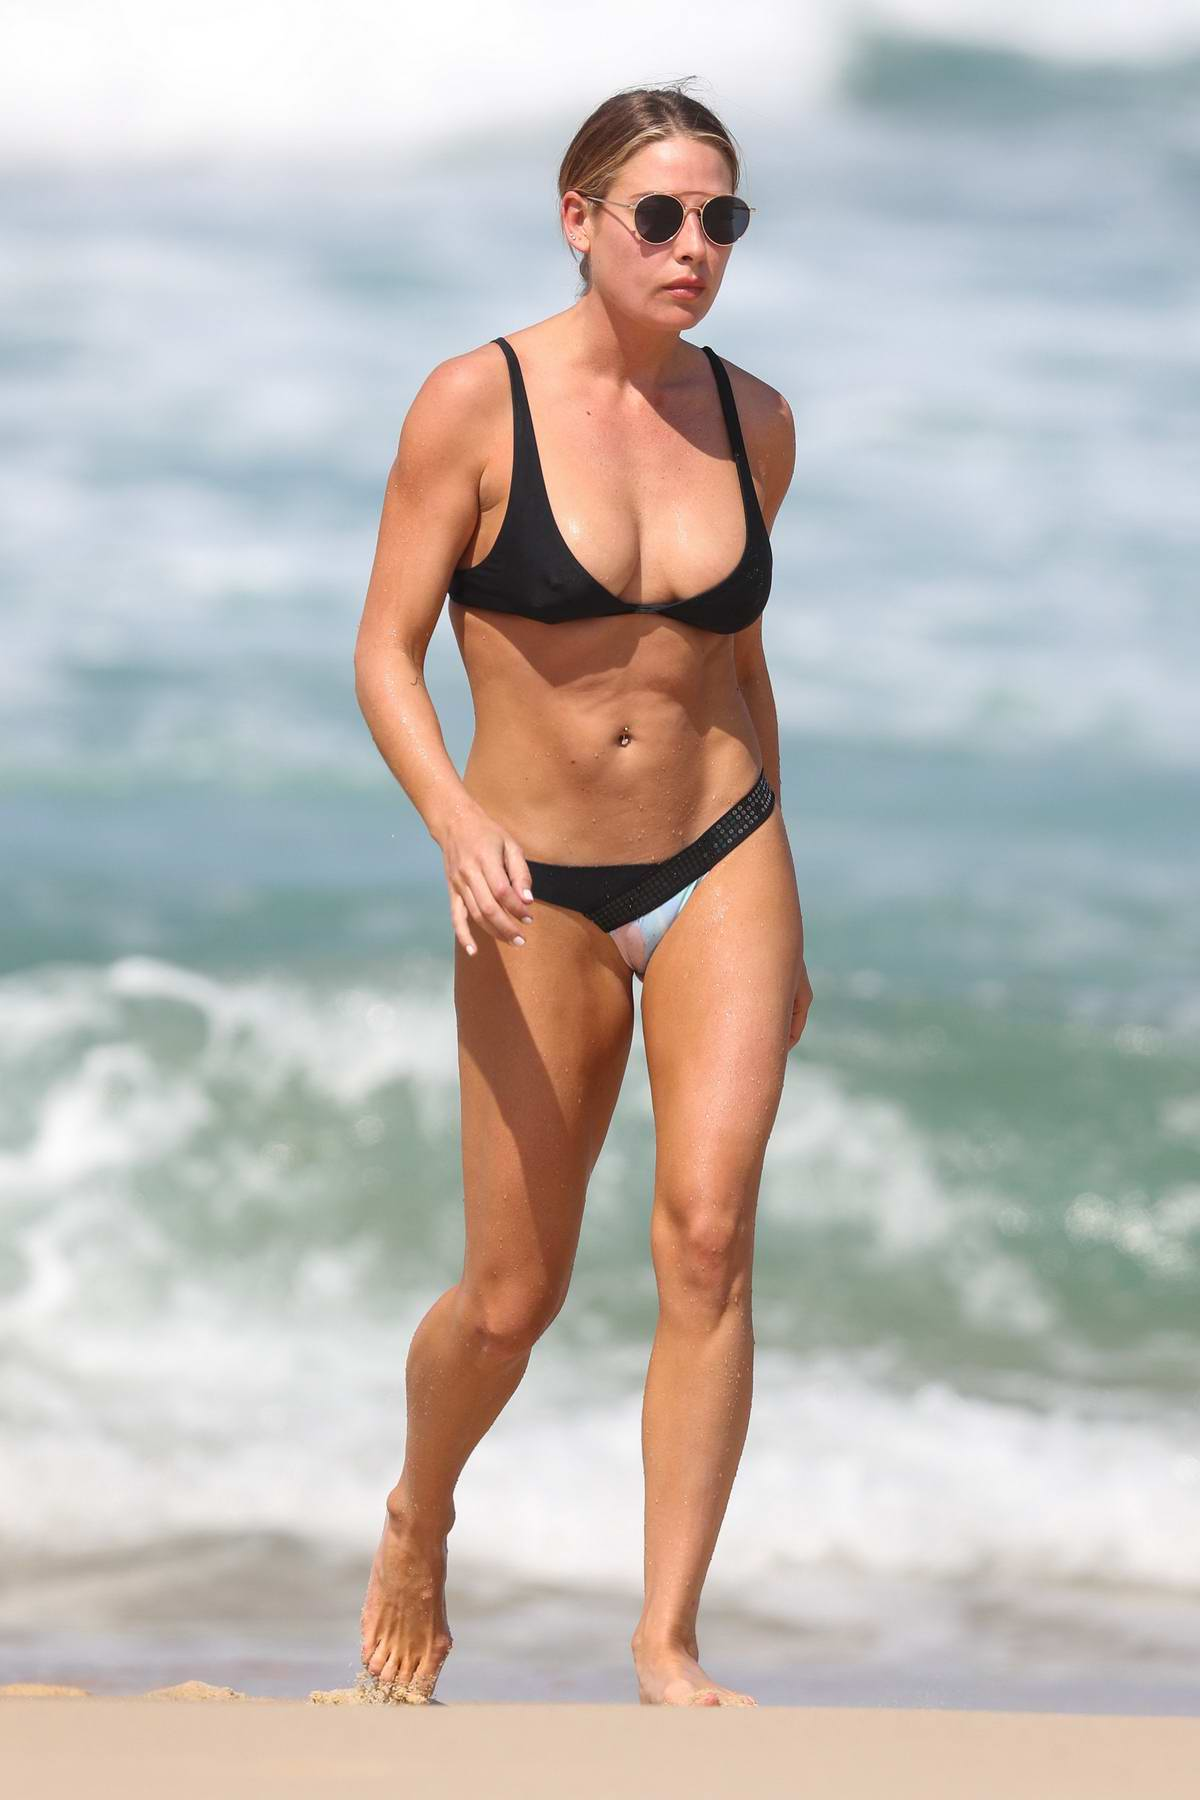 Lisa Clark in a bikini enjoying the beach in Sydney, Australia